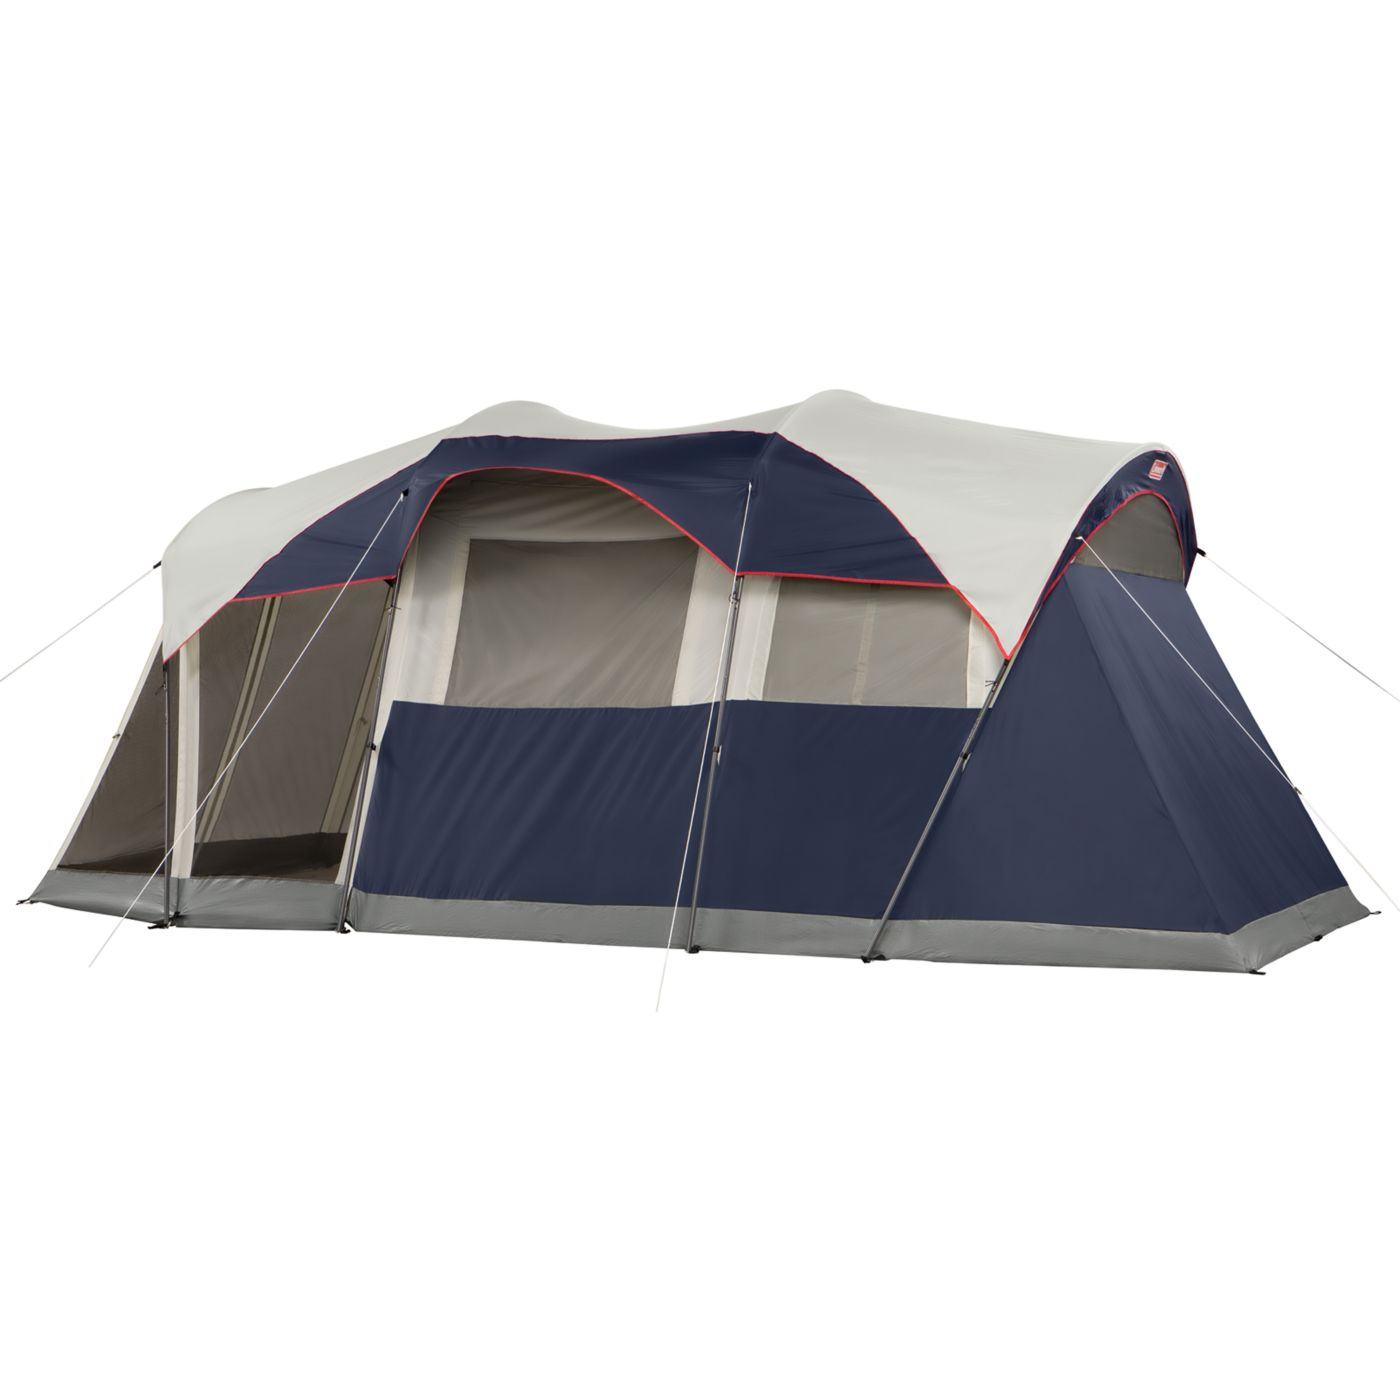 Elite WeatherMaster® 6-Person Lighted Tent with Screen Room  sc 1 st  Coleman & Coleman Tents | Easy Up Tents | Coleman